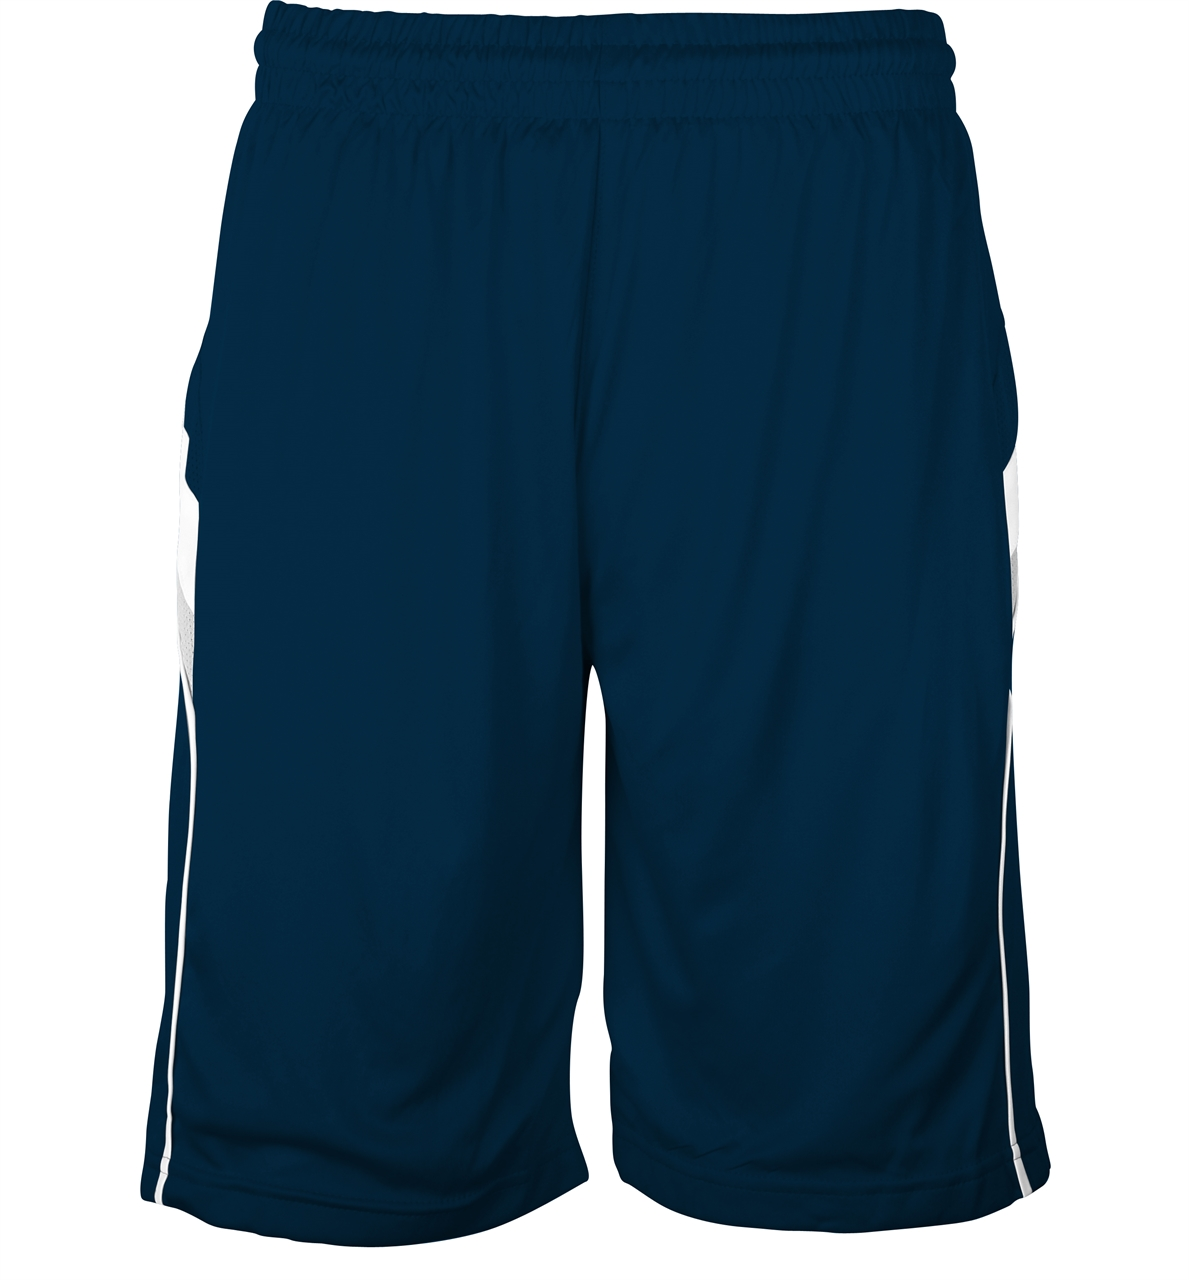 Picture of N3 Sport Dry Fit Basketball Shorts